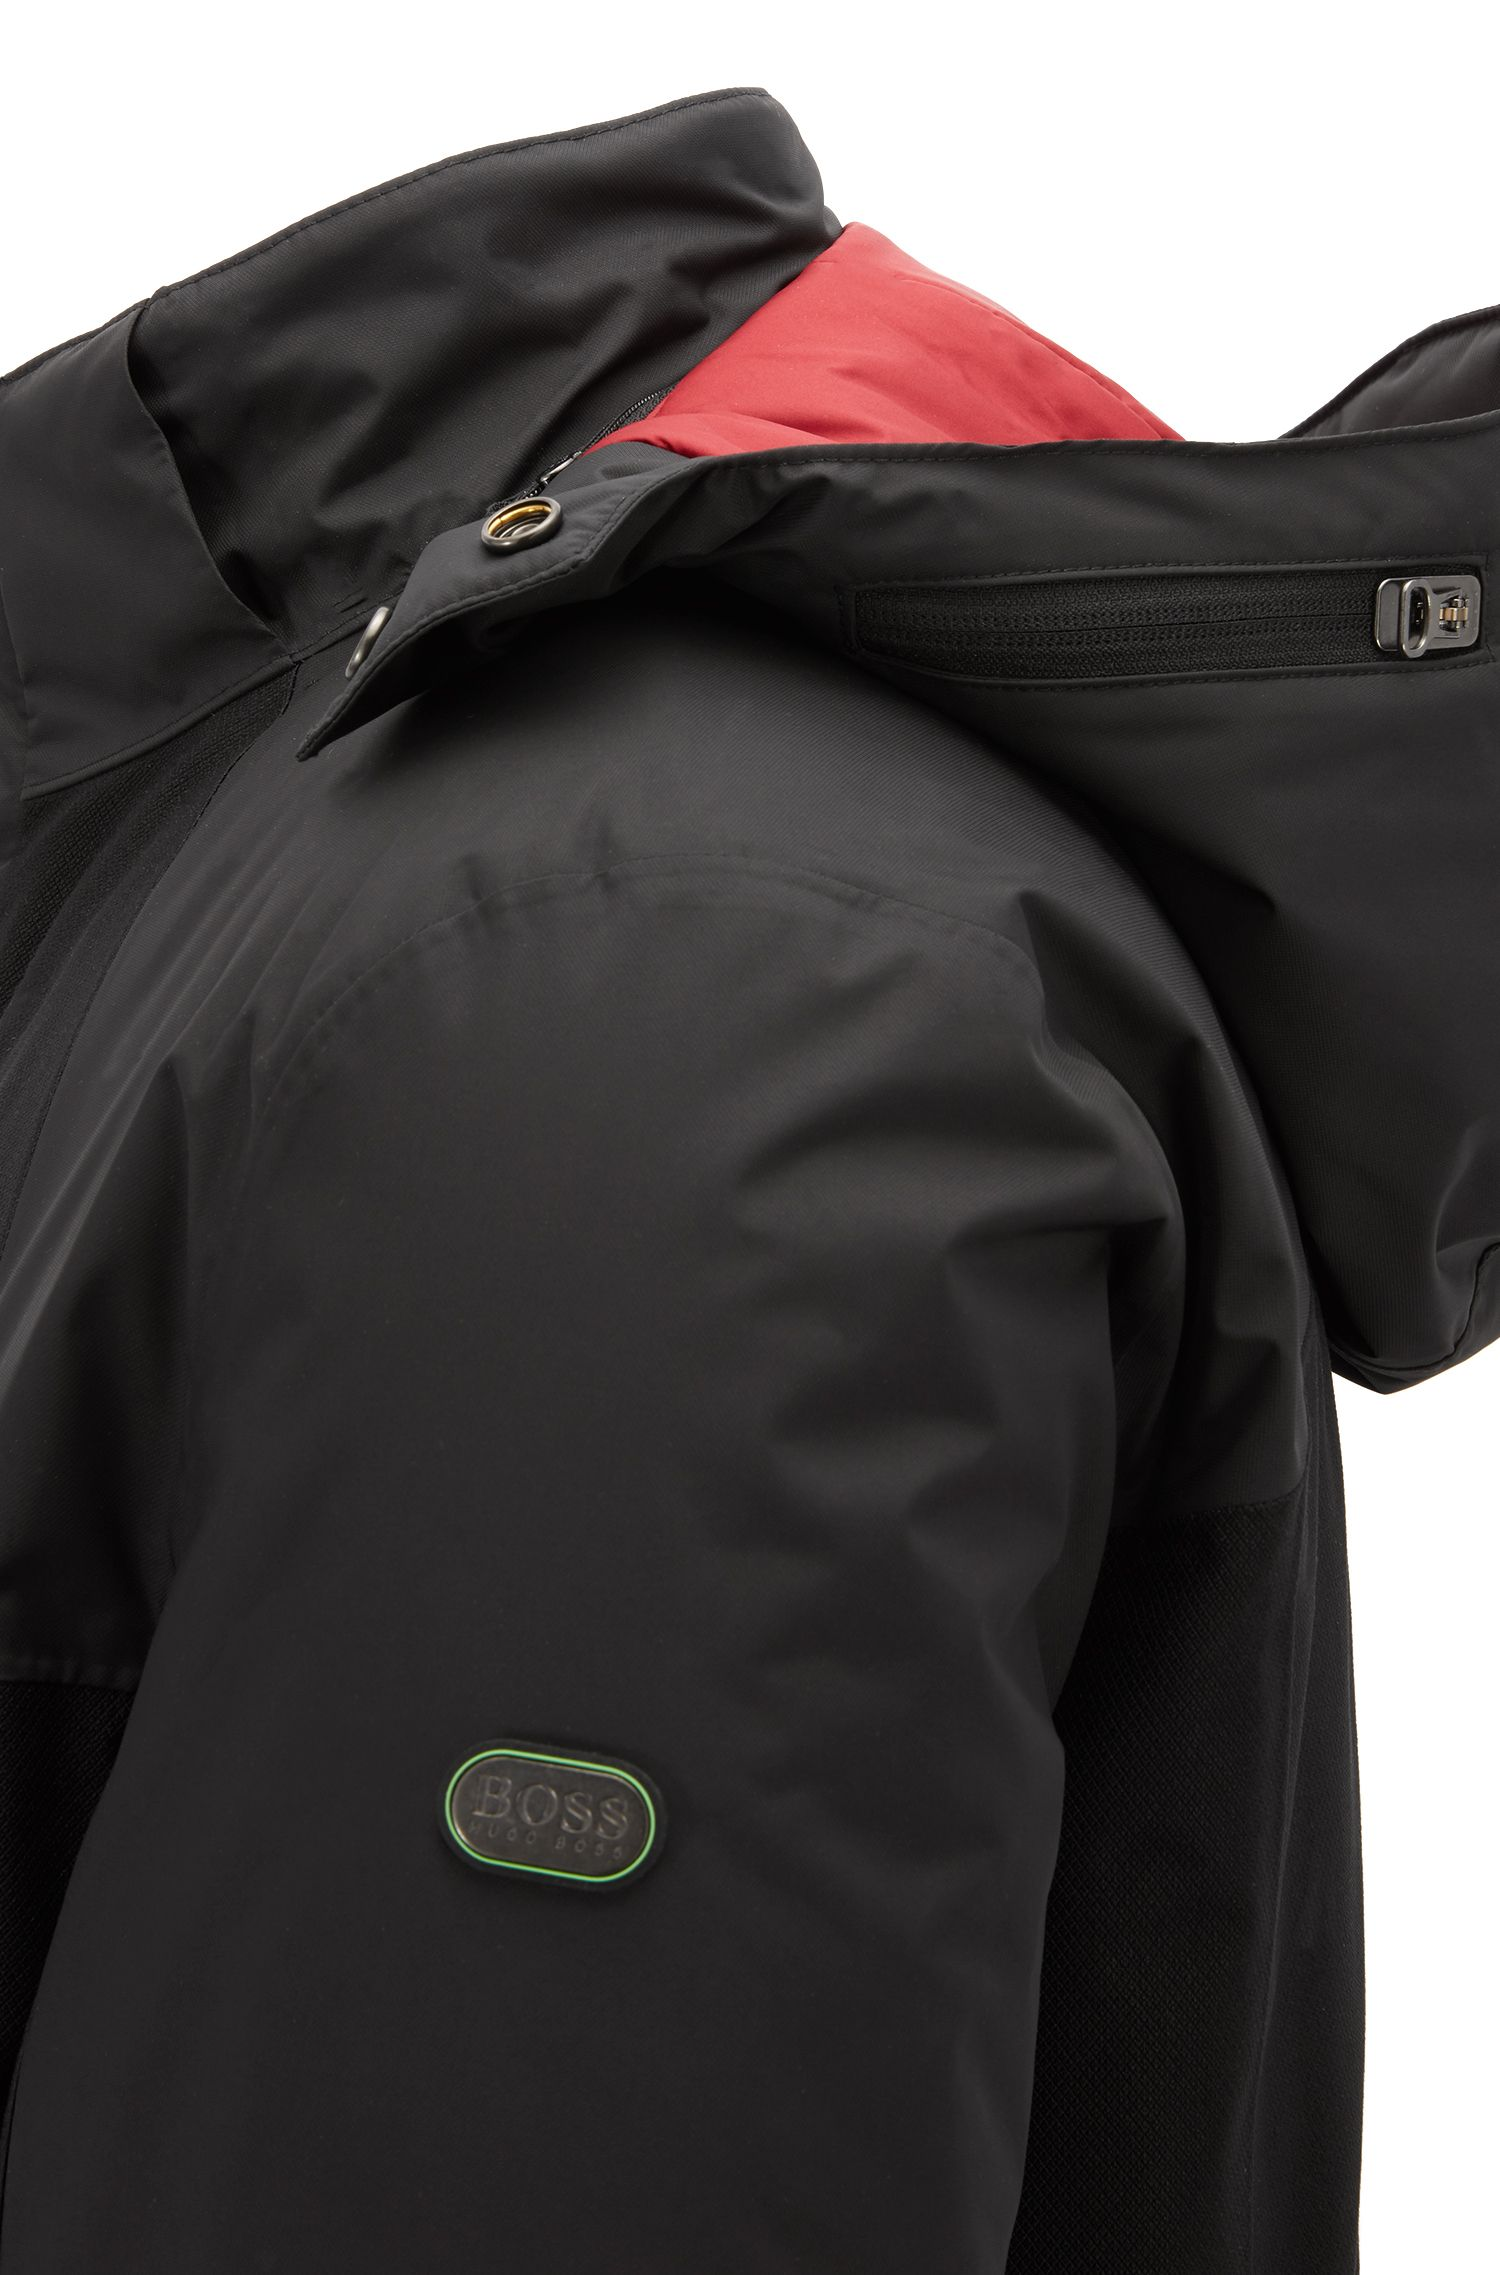 Heat System Outerwear jacket with detachable hood, Black